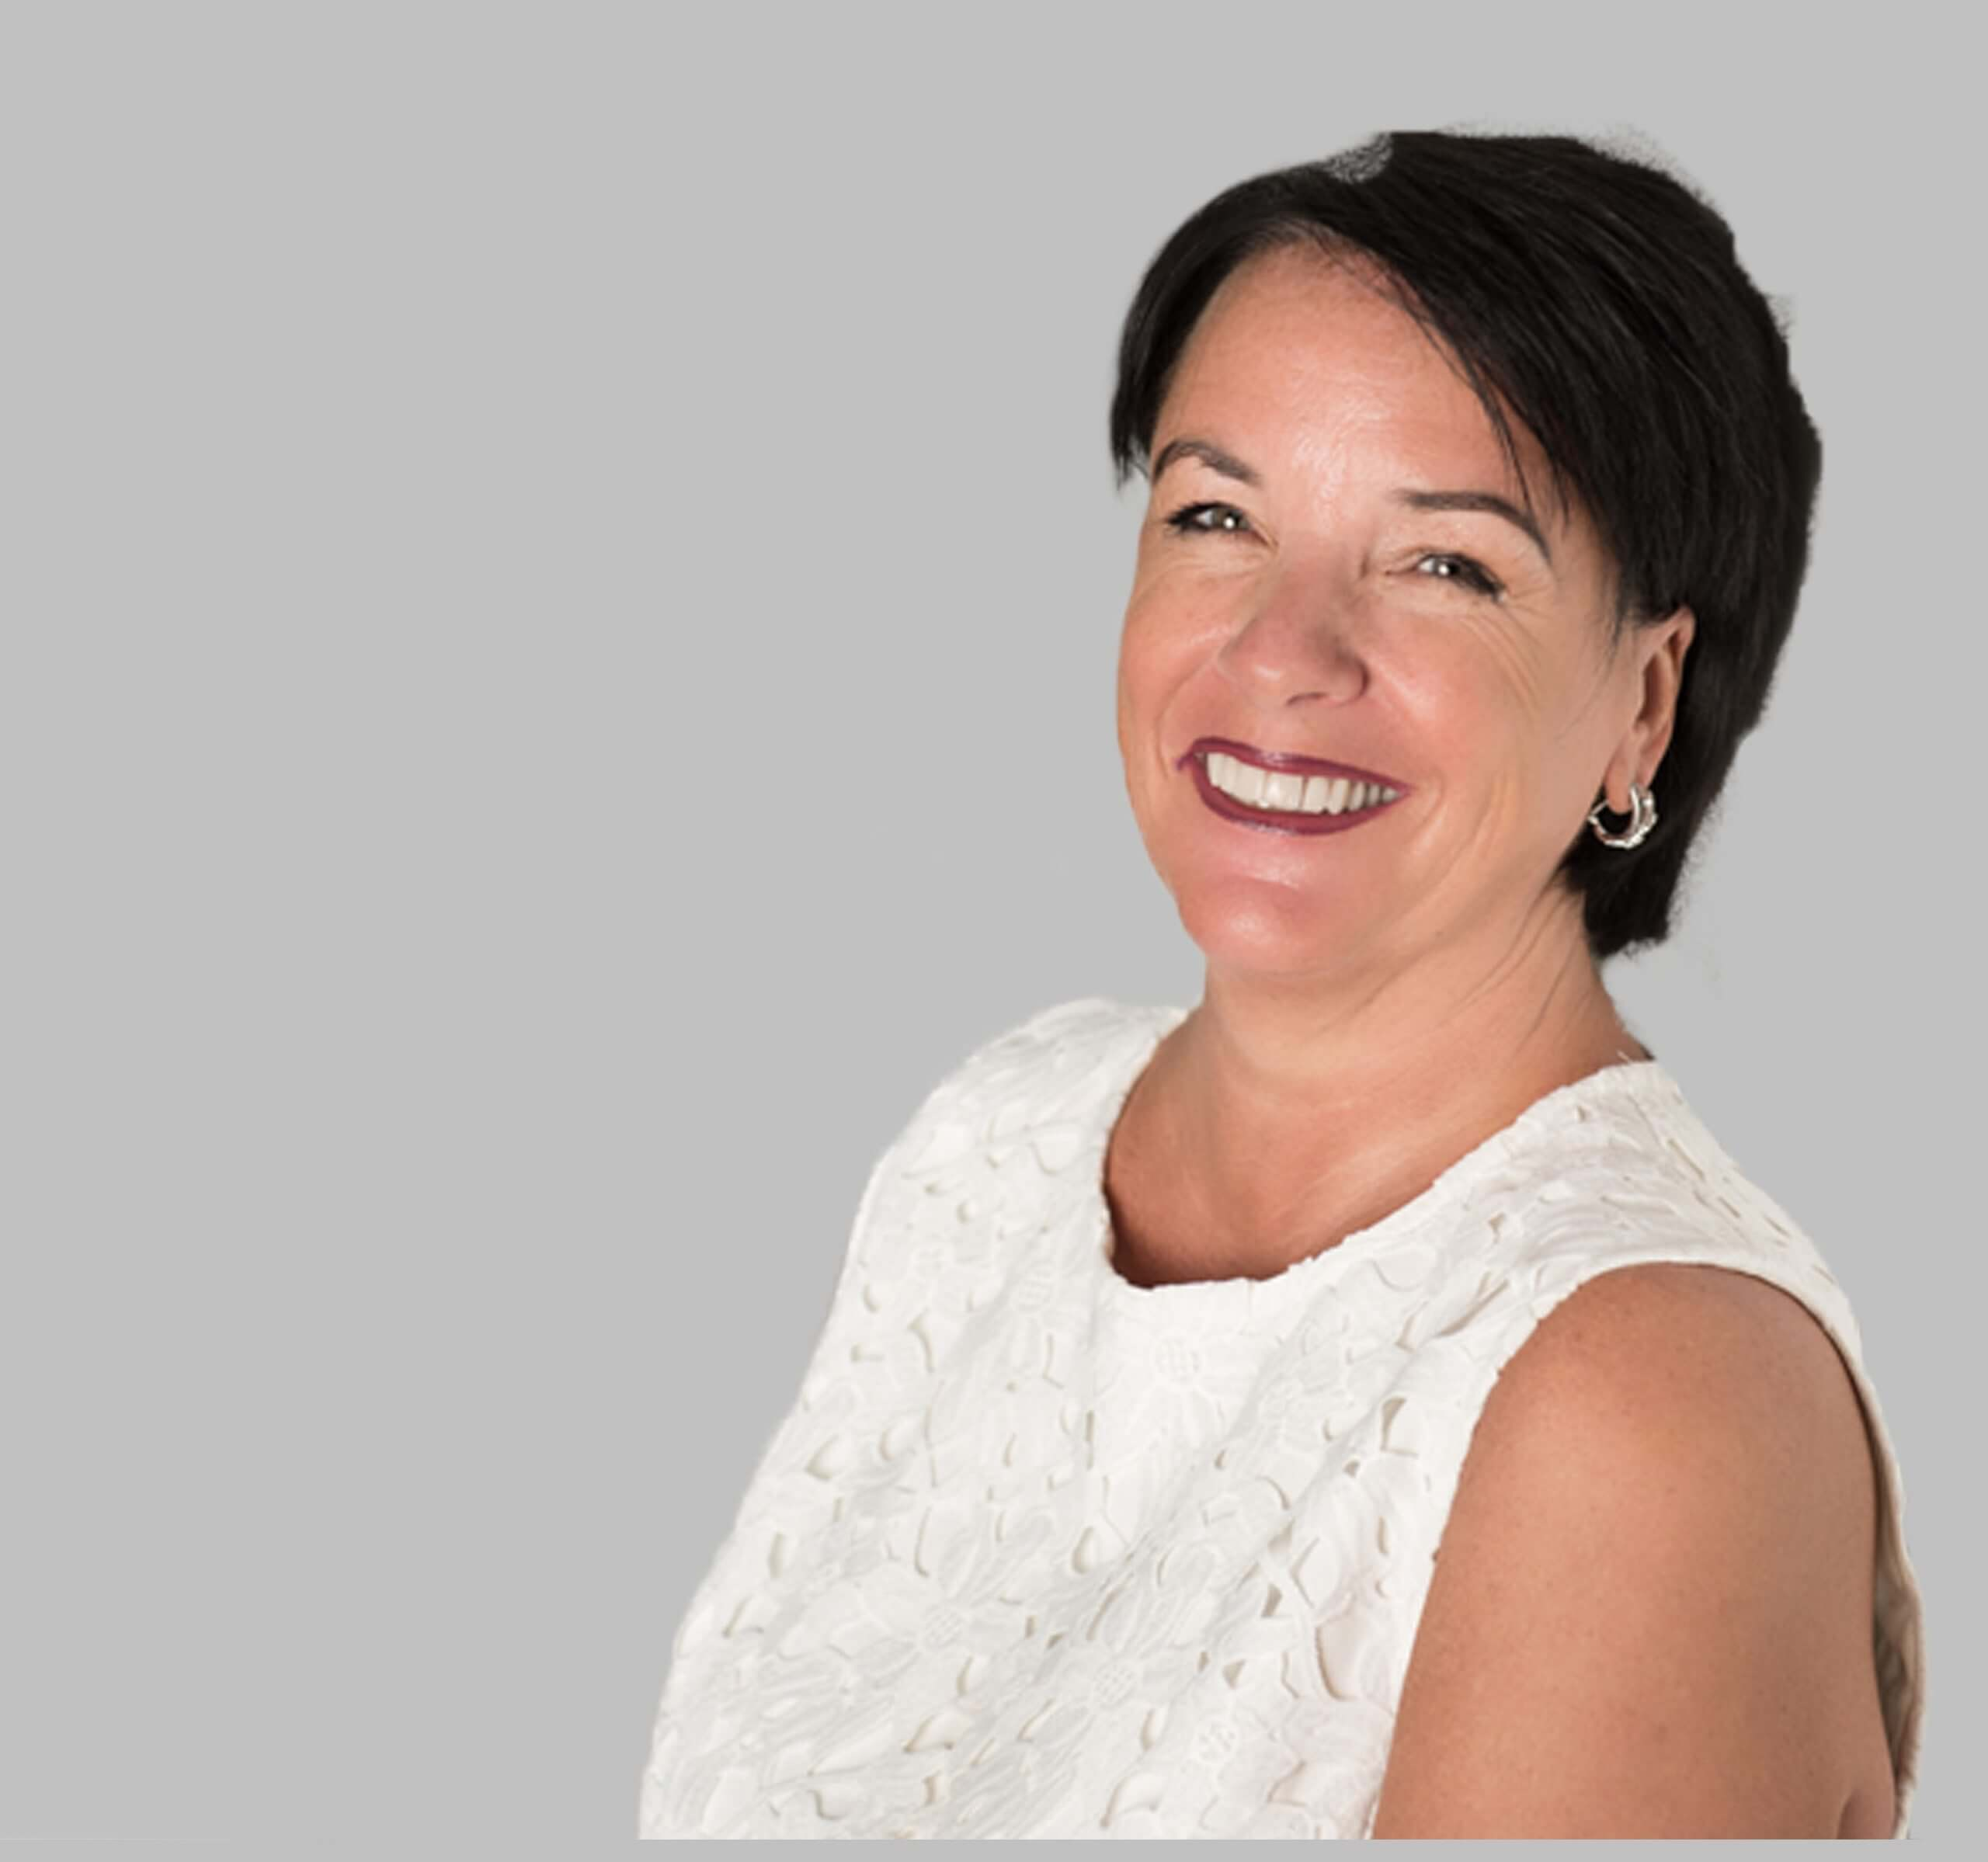 Northgate Public Services announces new CEO Tina Whitley